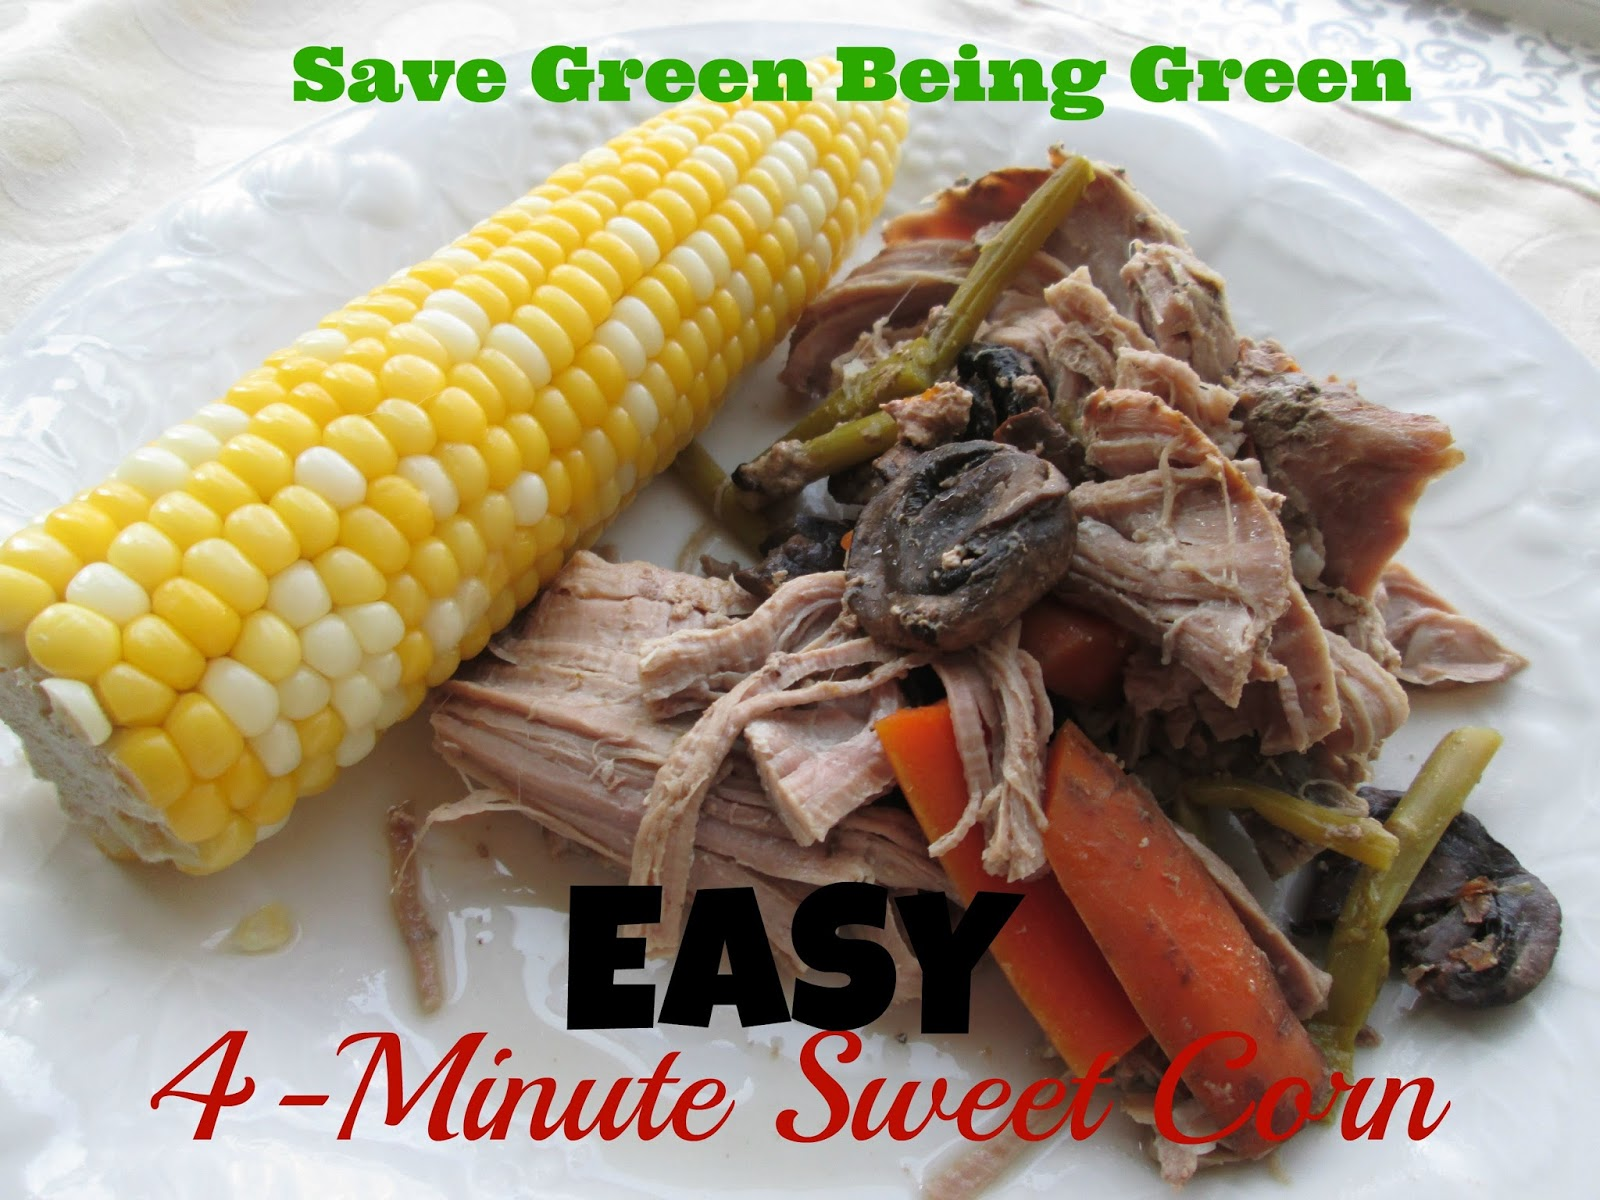 Save Green Being Green: Thrifty Thursday: 4-Minute Sweet Corn